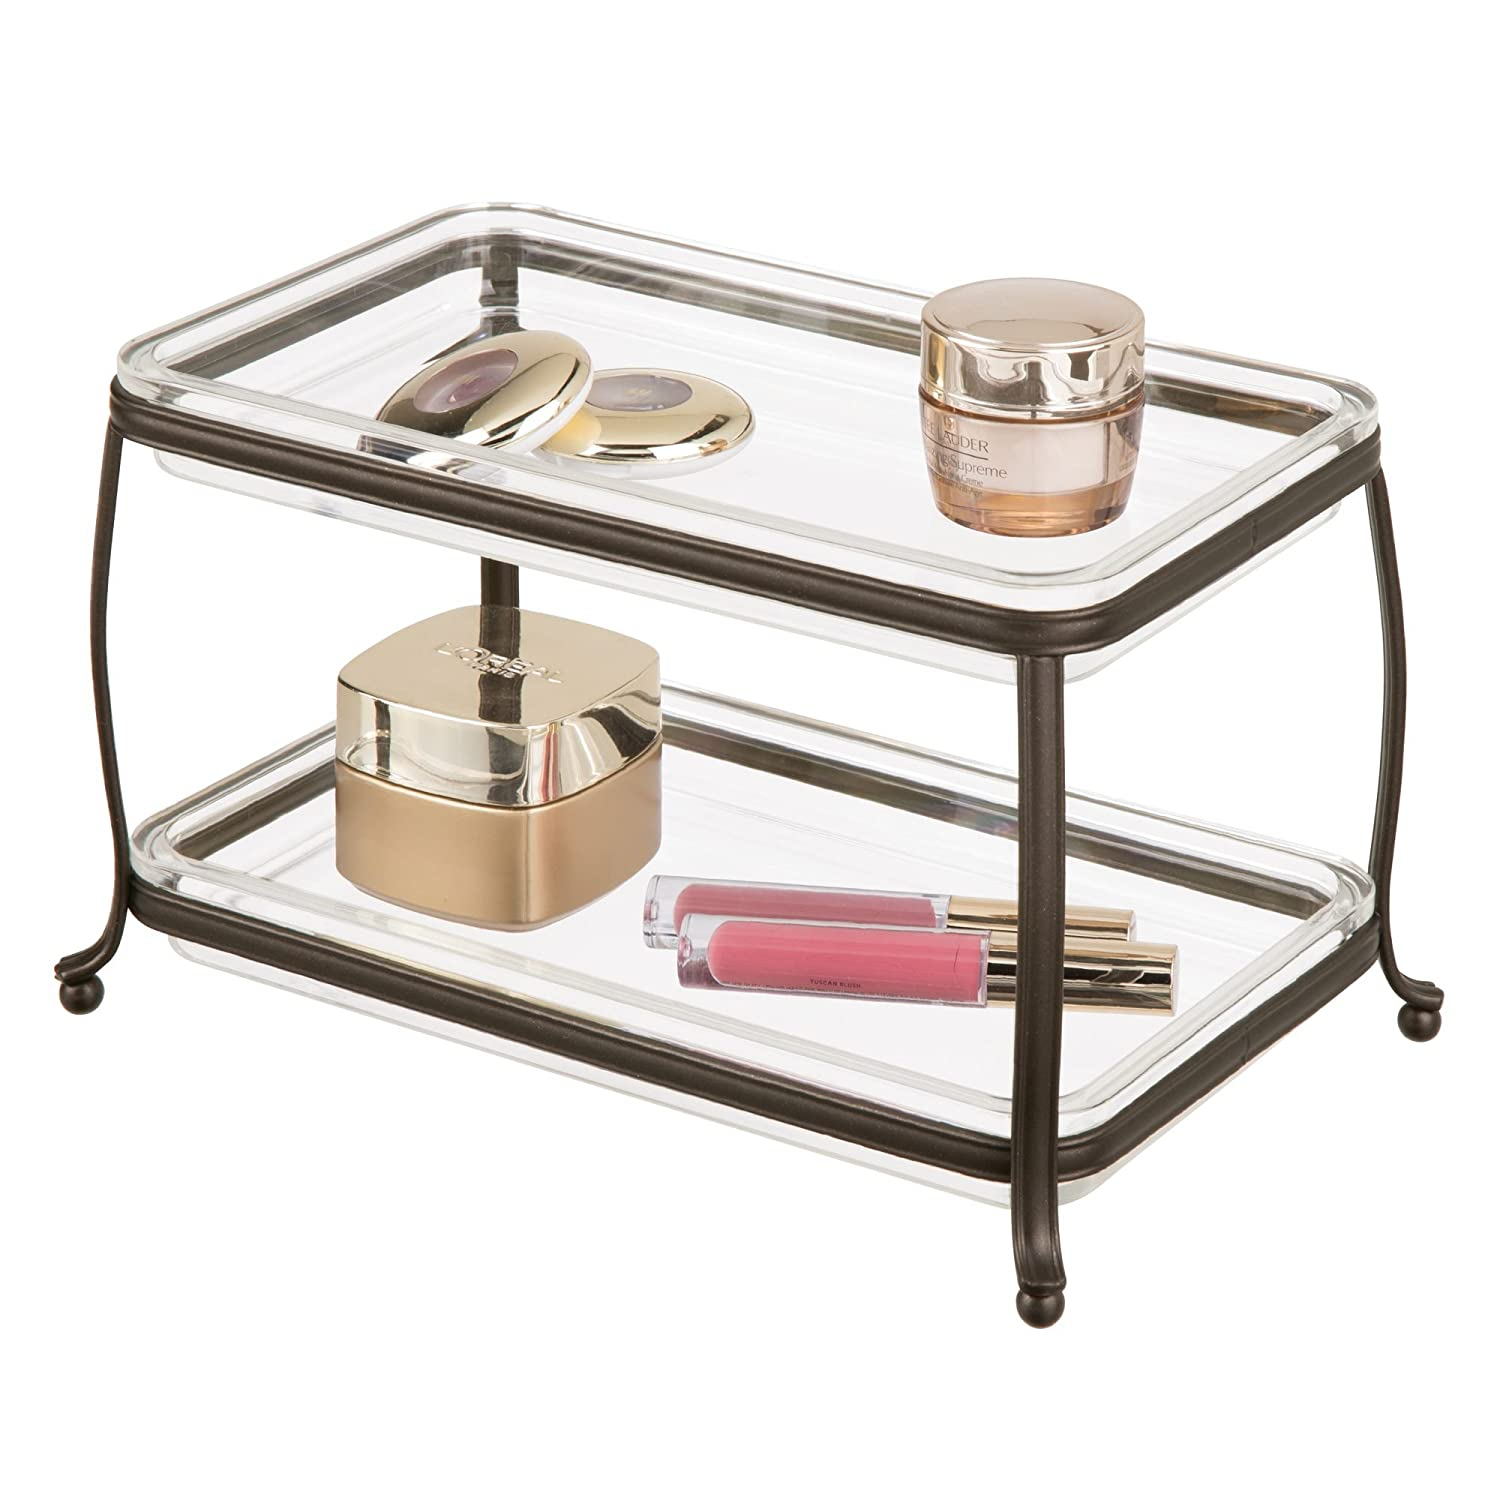 mDesign Traditional Fashion Jewelry Cosmetic Organizer Tray Bathroom Vanity Countertops - 2 Tiers, Bronze/Clear MetroDecor 1524MDC